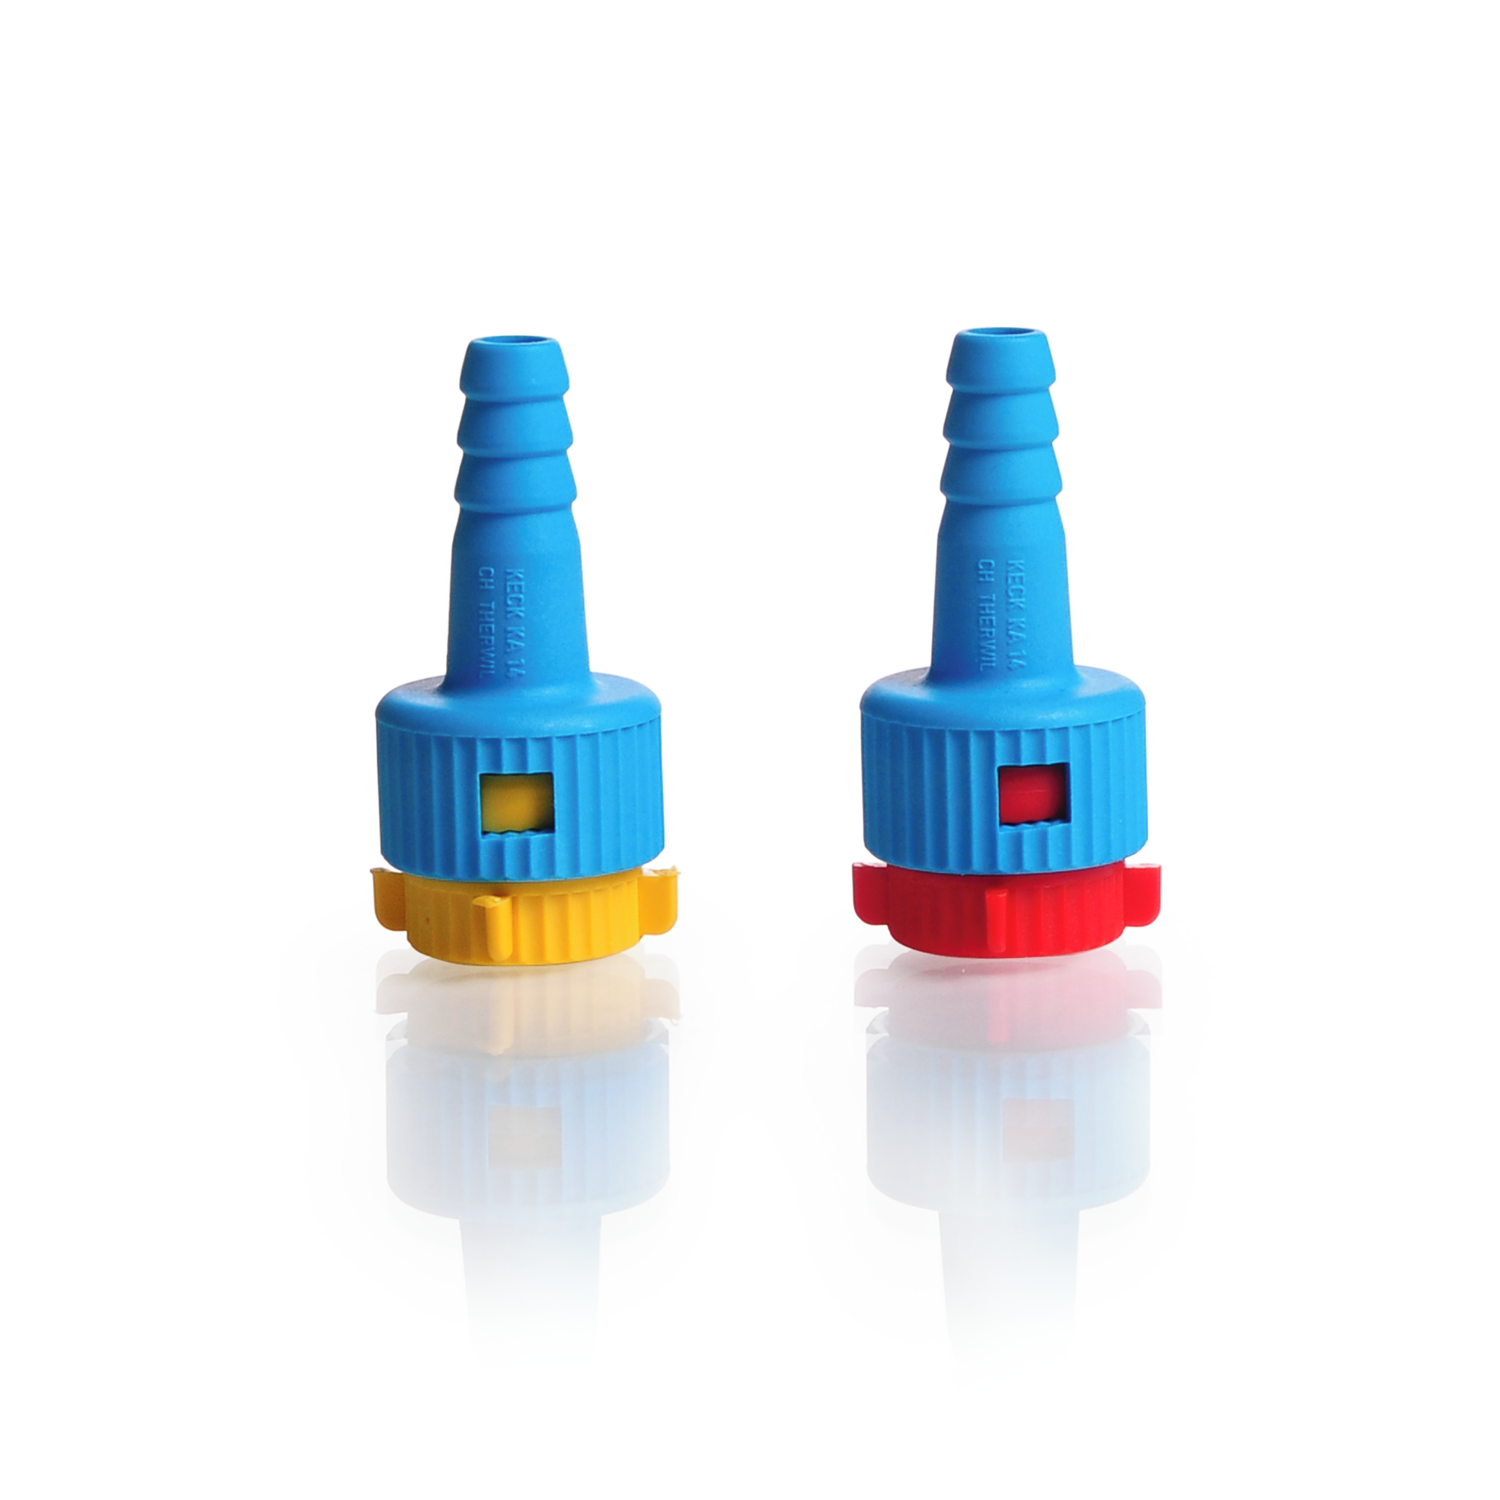 Keck™ Adapter KA, GL 14, from glass thread to hose connection plastic Ø 4.5 mm